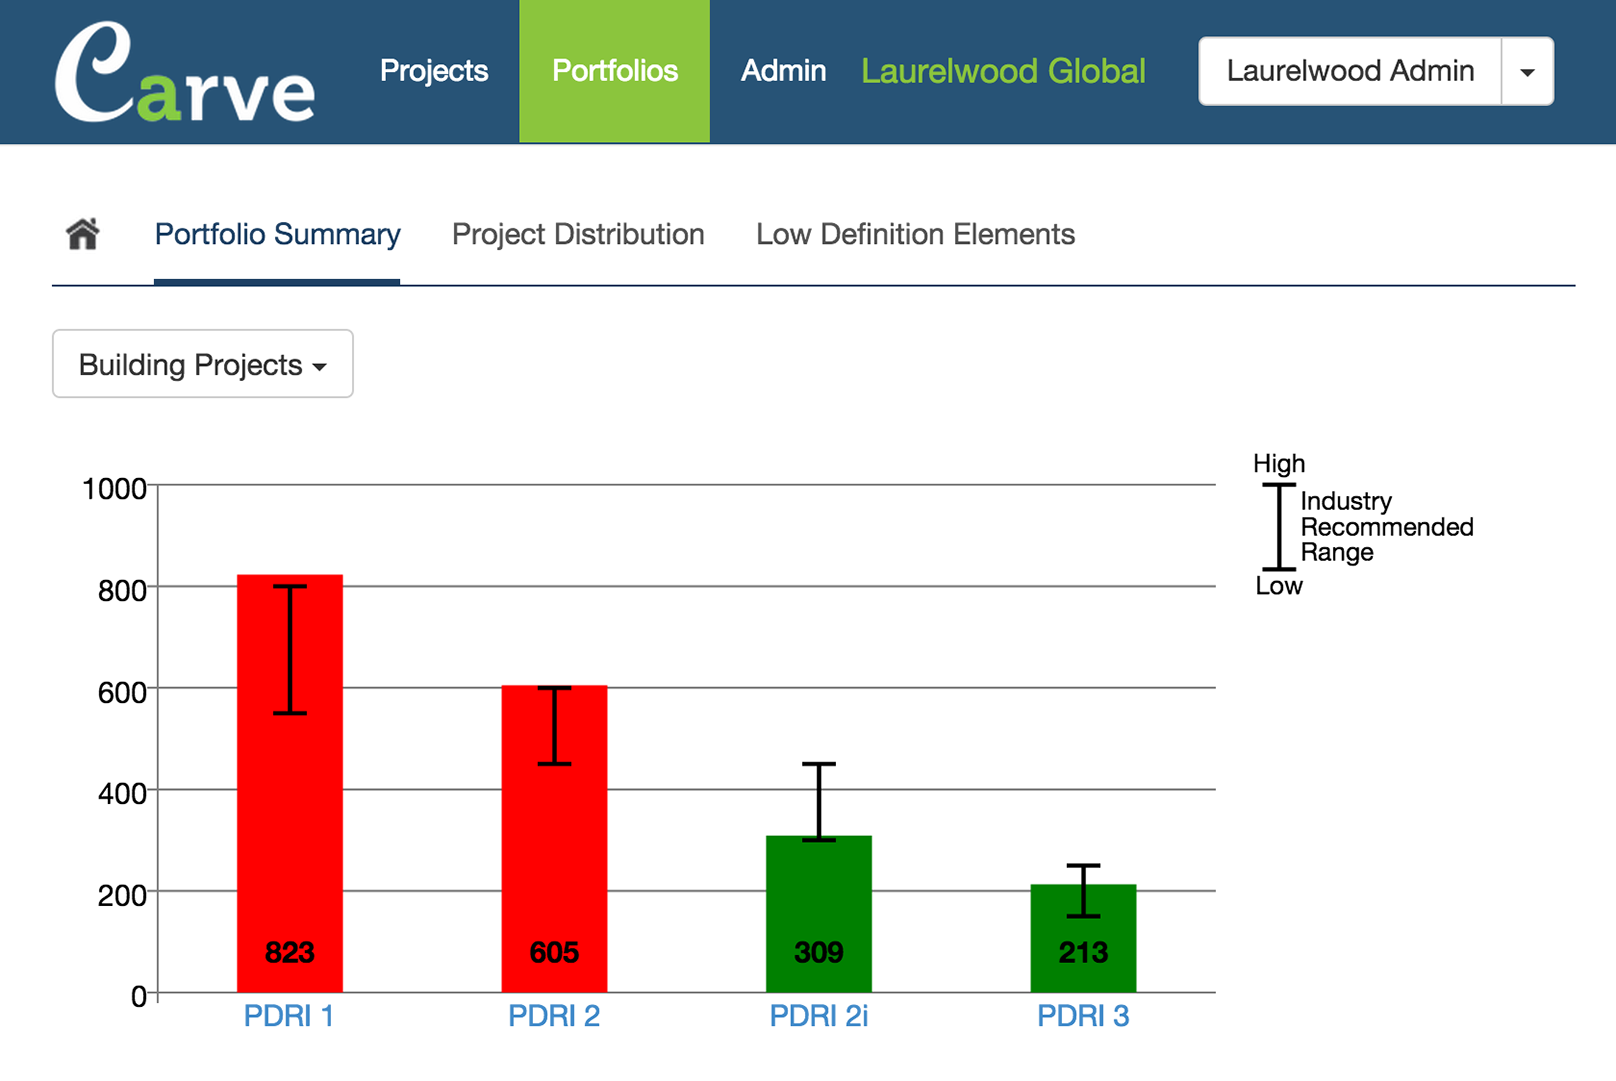 Portfolio summary for Laurelwood Global showing four PDRI scores for the progression of a single project within their portfolio.